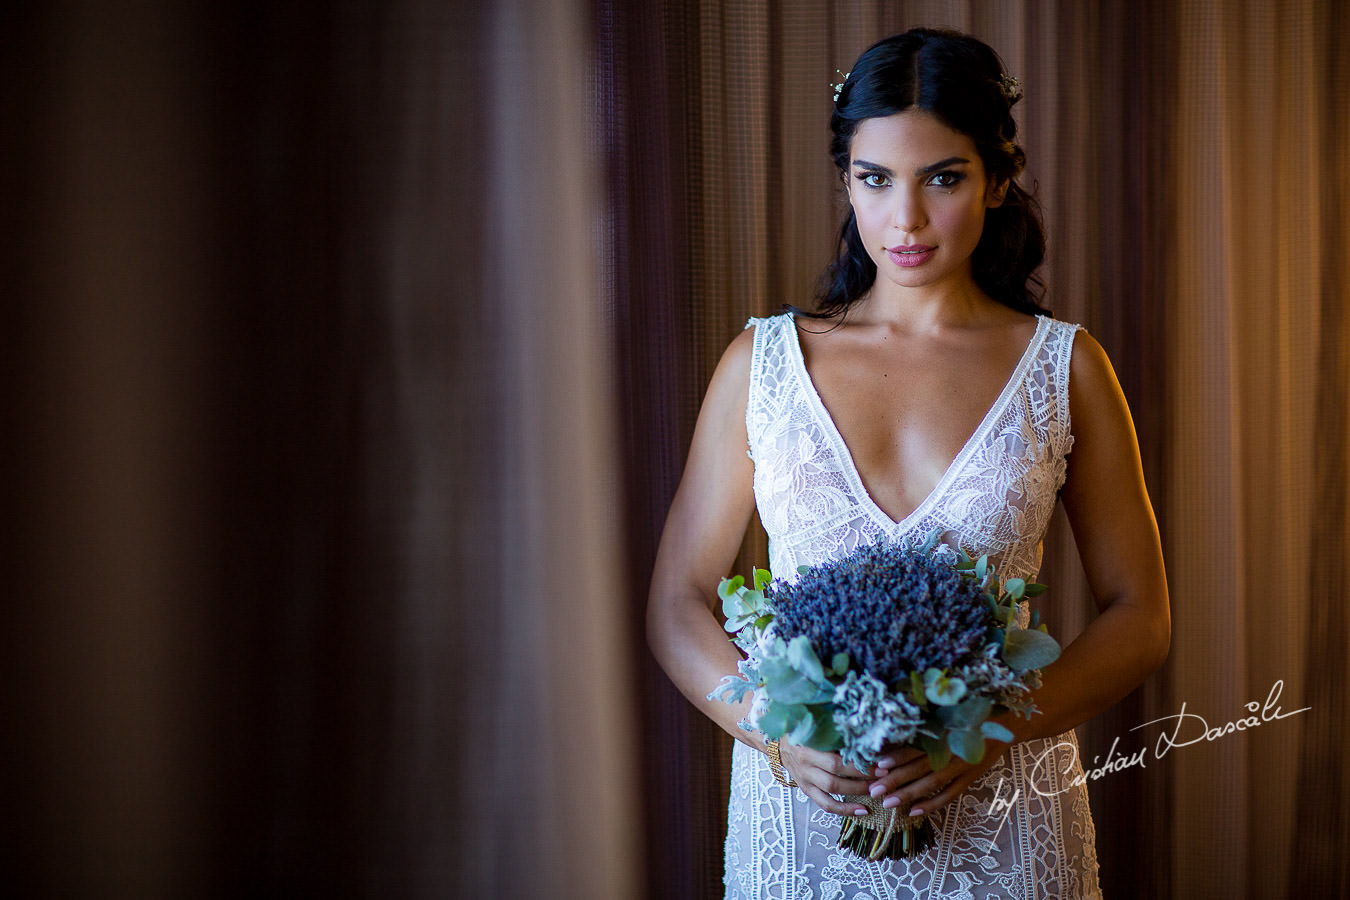 Bridal portrait captured during a wedding photography at the Lighthouse Limassol, by Cyprus Photographer Cristian Dascalu.